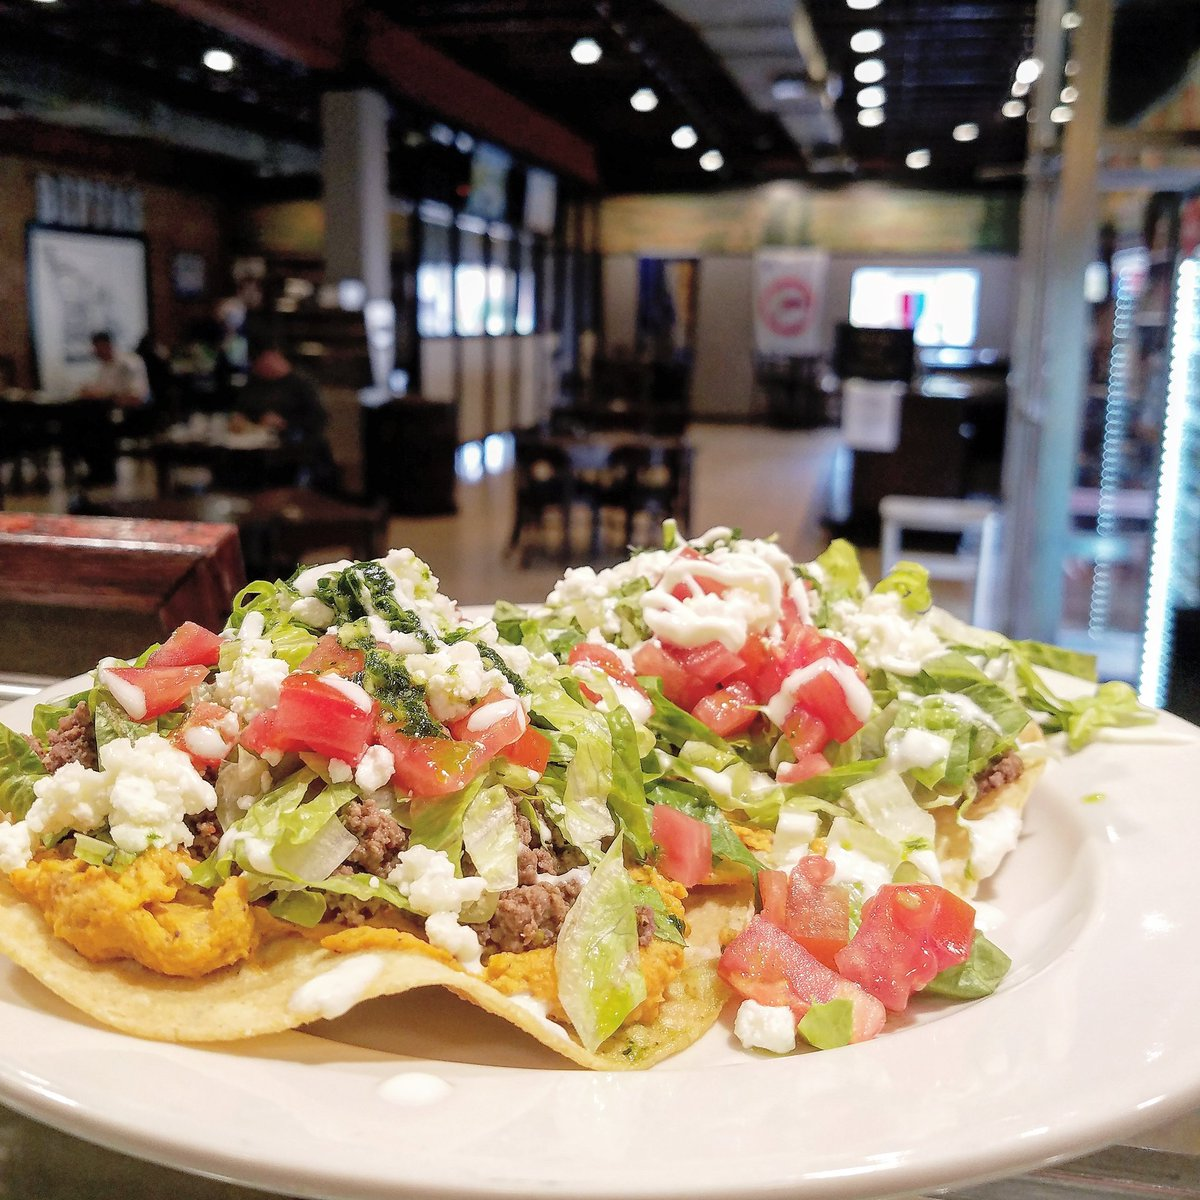 Tostadas Tuesday!   Lamb, Hummus, Goat Cheese, Lettuce, Tomato, Crema, & Chimichurri   Enjoy these all day for curbside and dine in, or at our Trivia Night tonight at 6:30!   #tostadas  #familyowned  #triviatuesday  #supportlocal https://t.co/VmFGnGOzWD